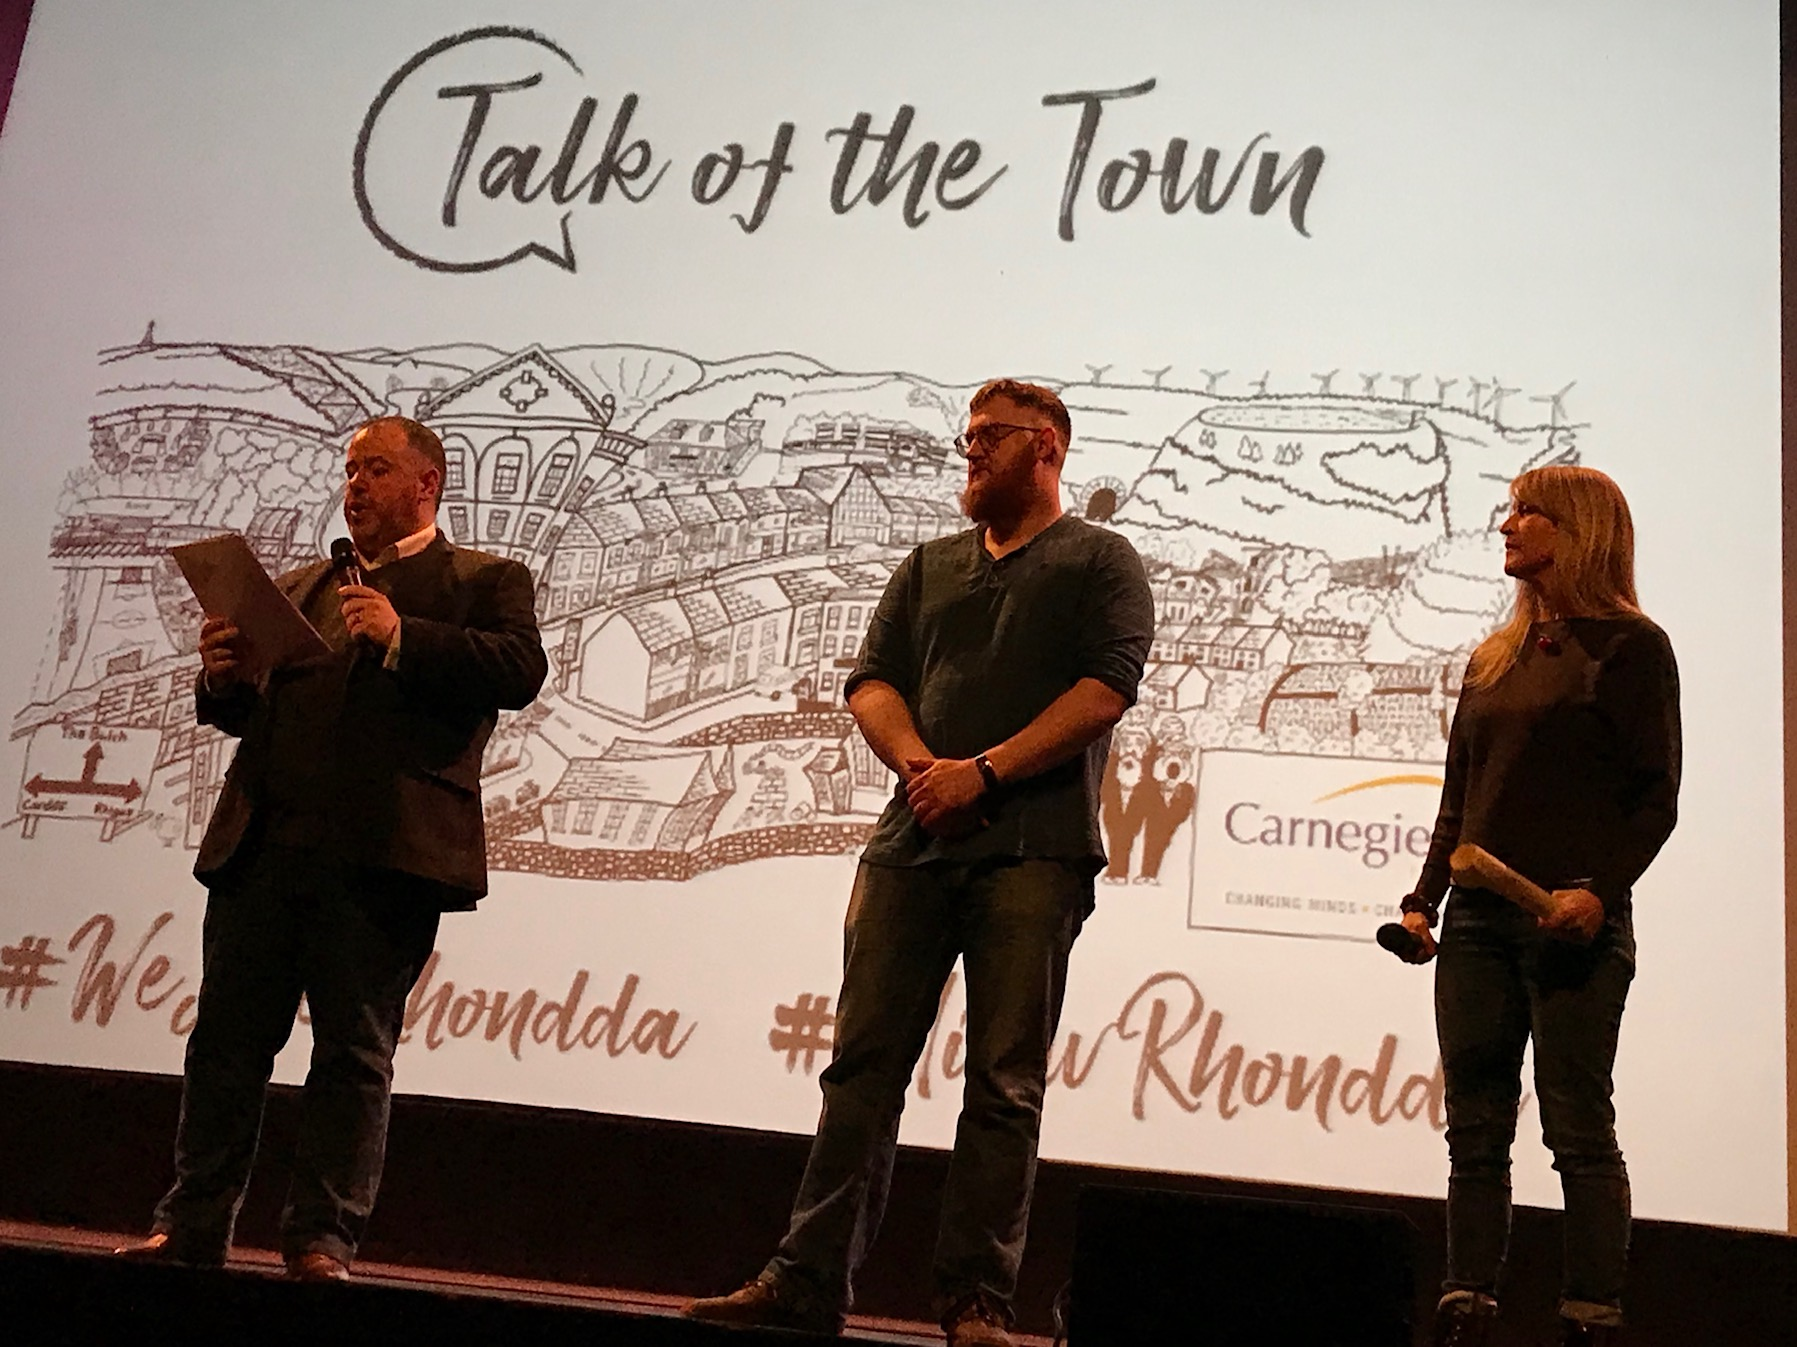 Treorchy Talk of the Town event